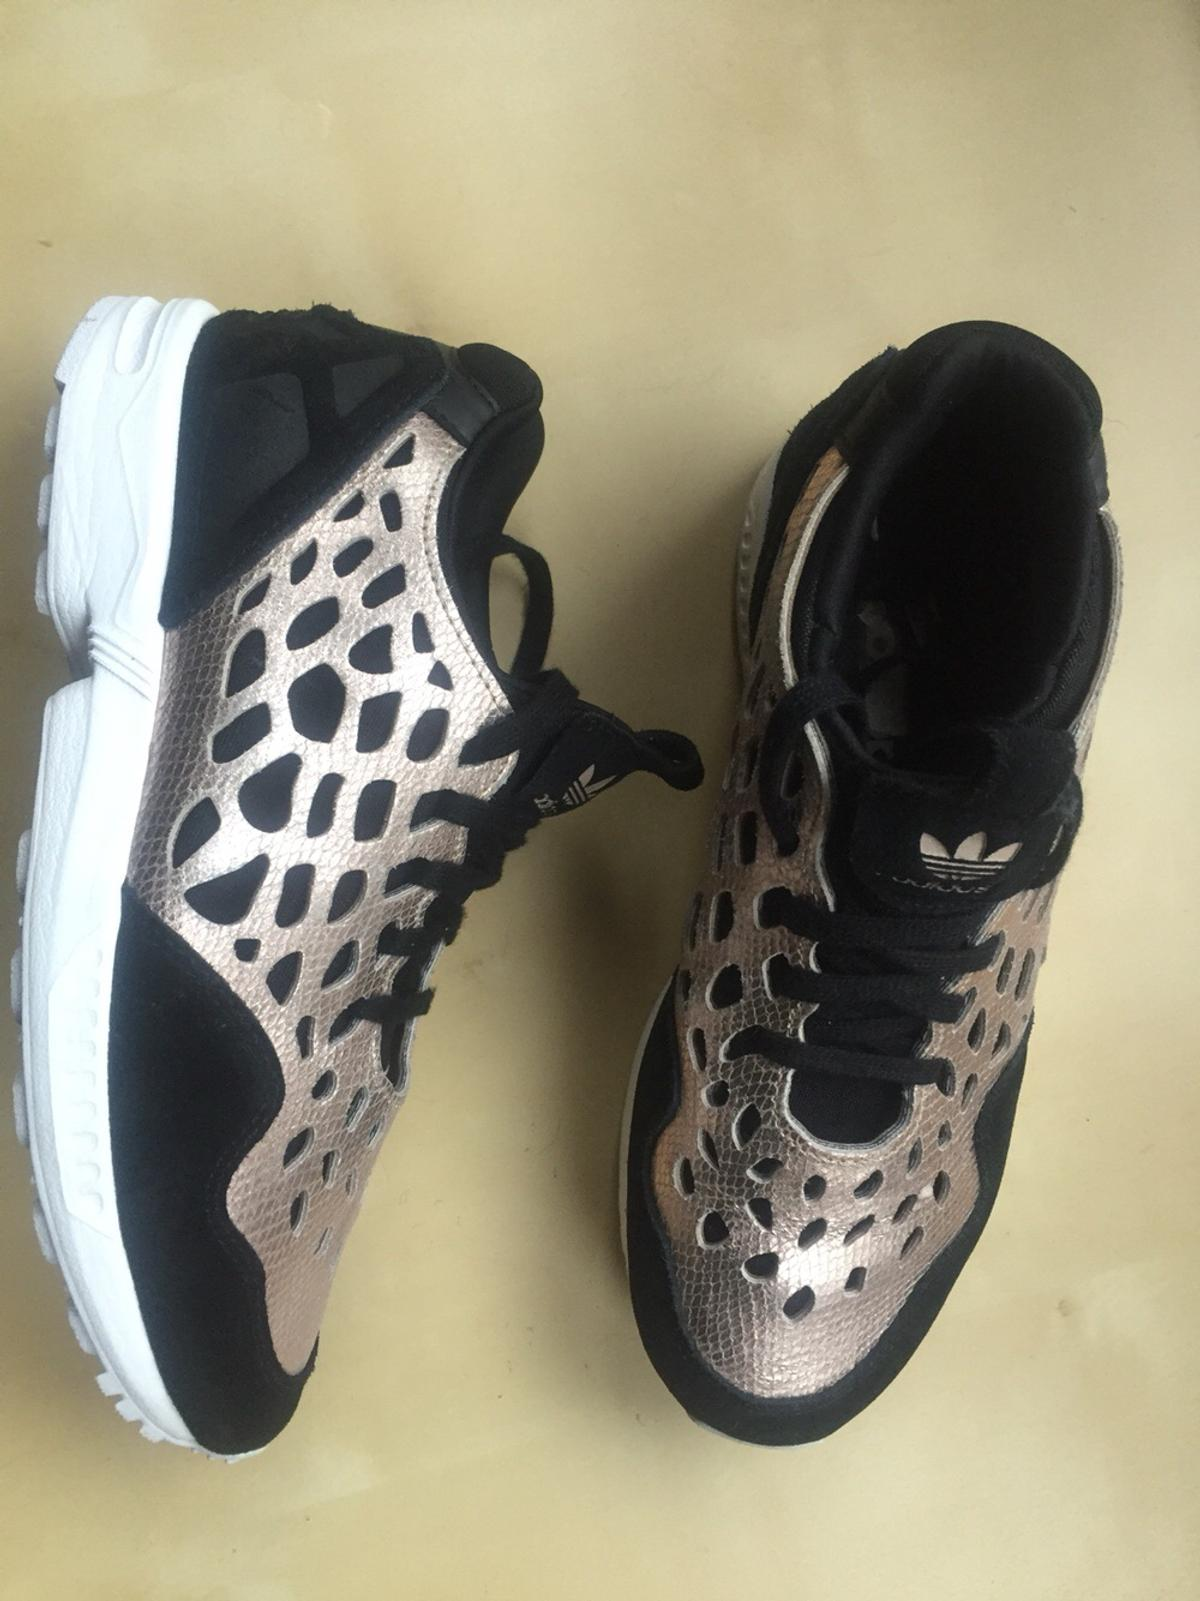 3c4ba992d Description. Stunning and much sort after Adidas ZX Torsion Flux Trainers  ...